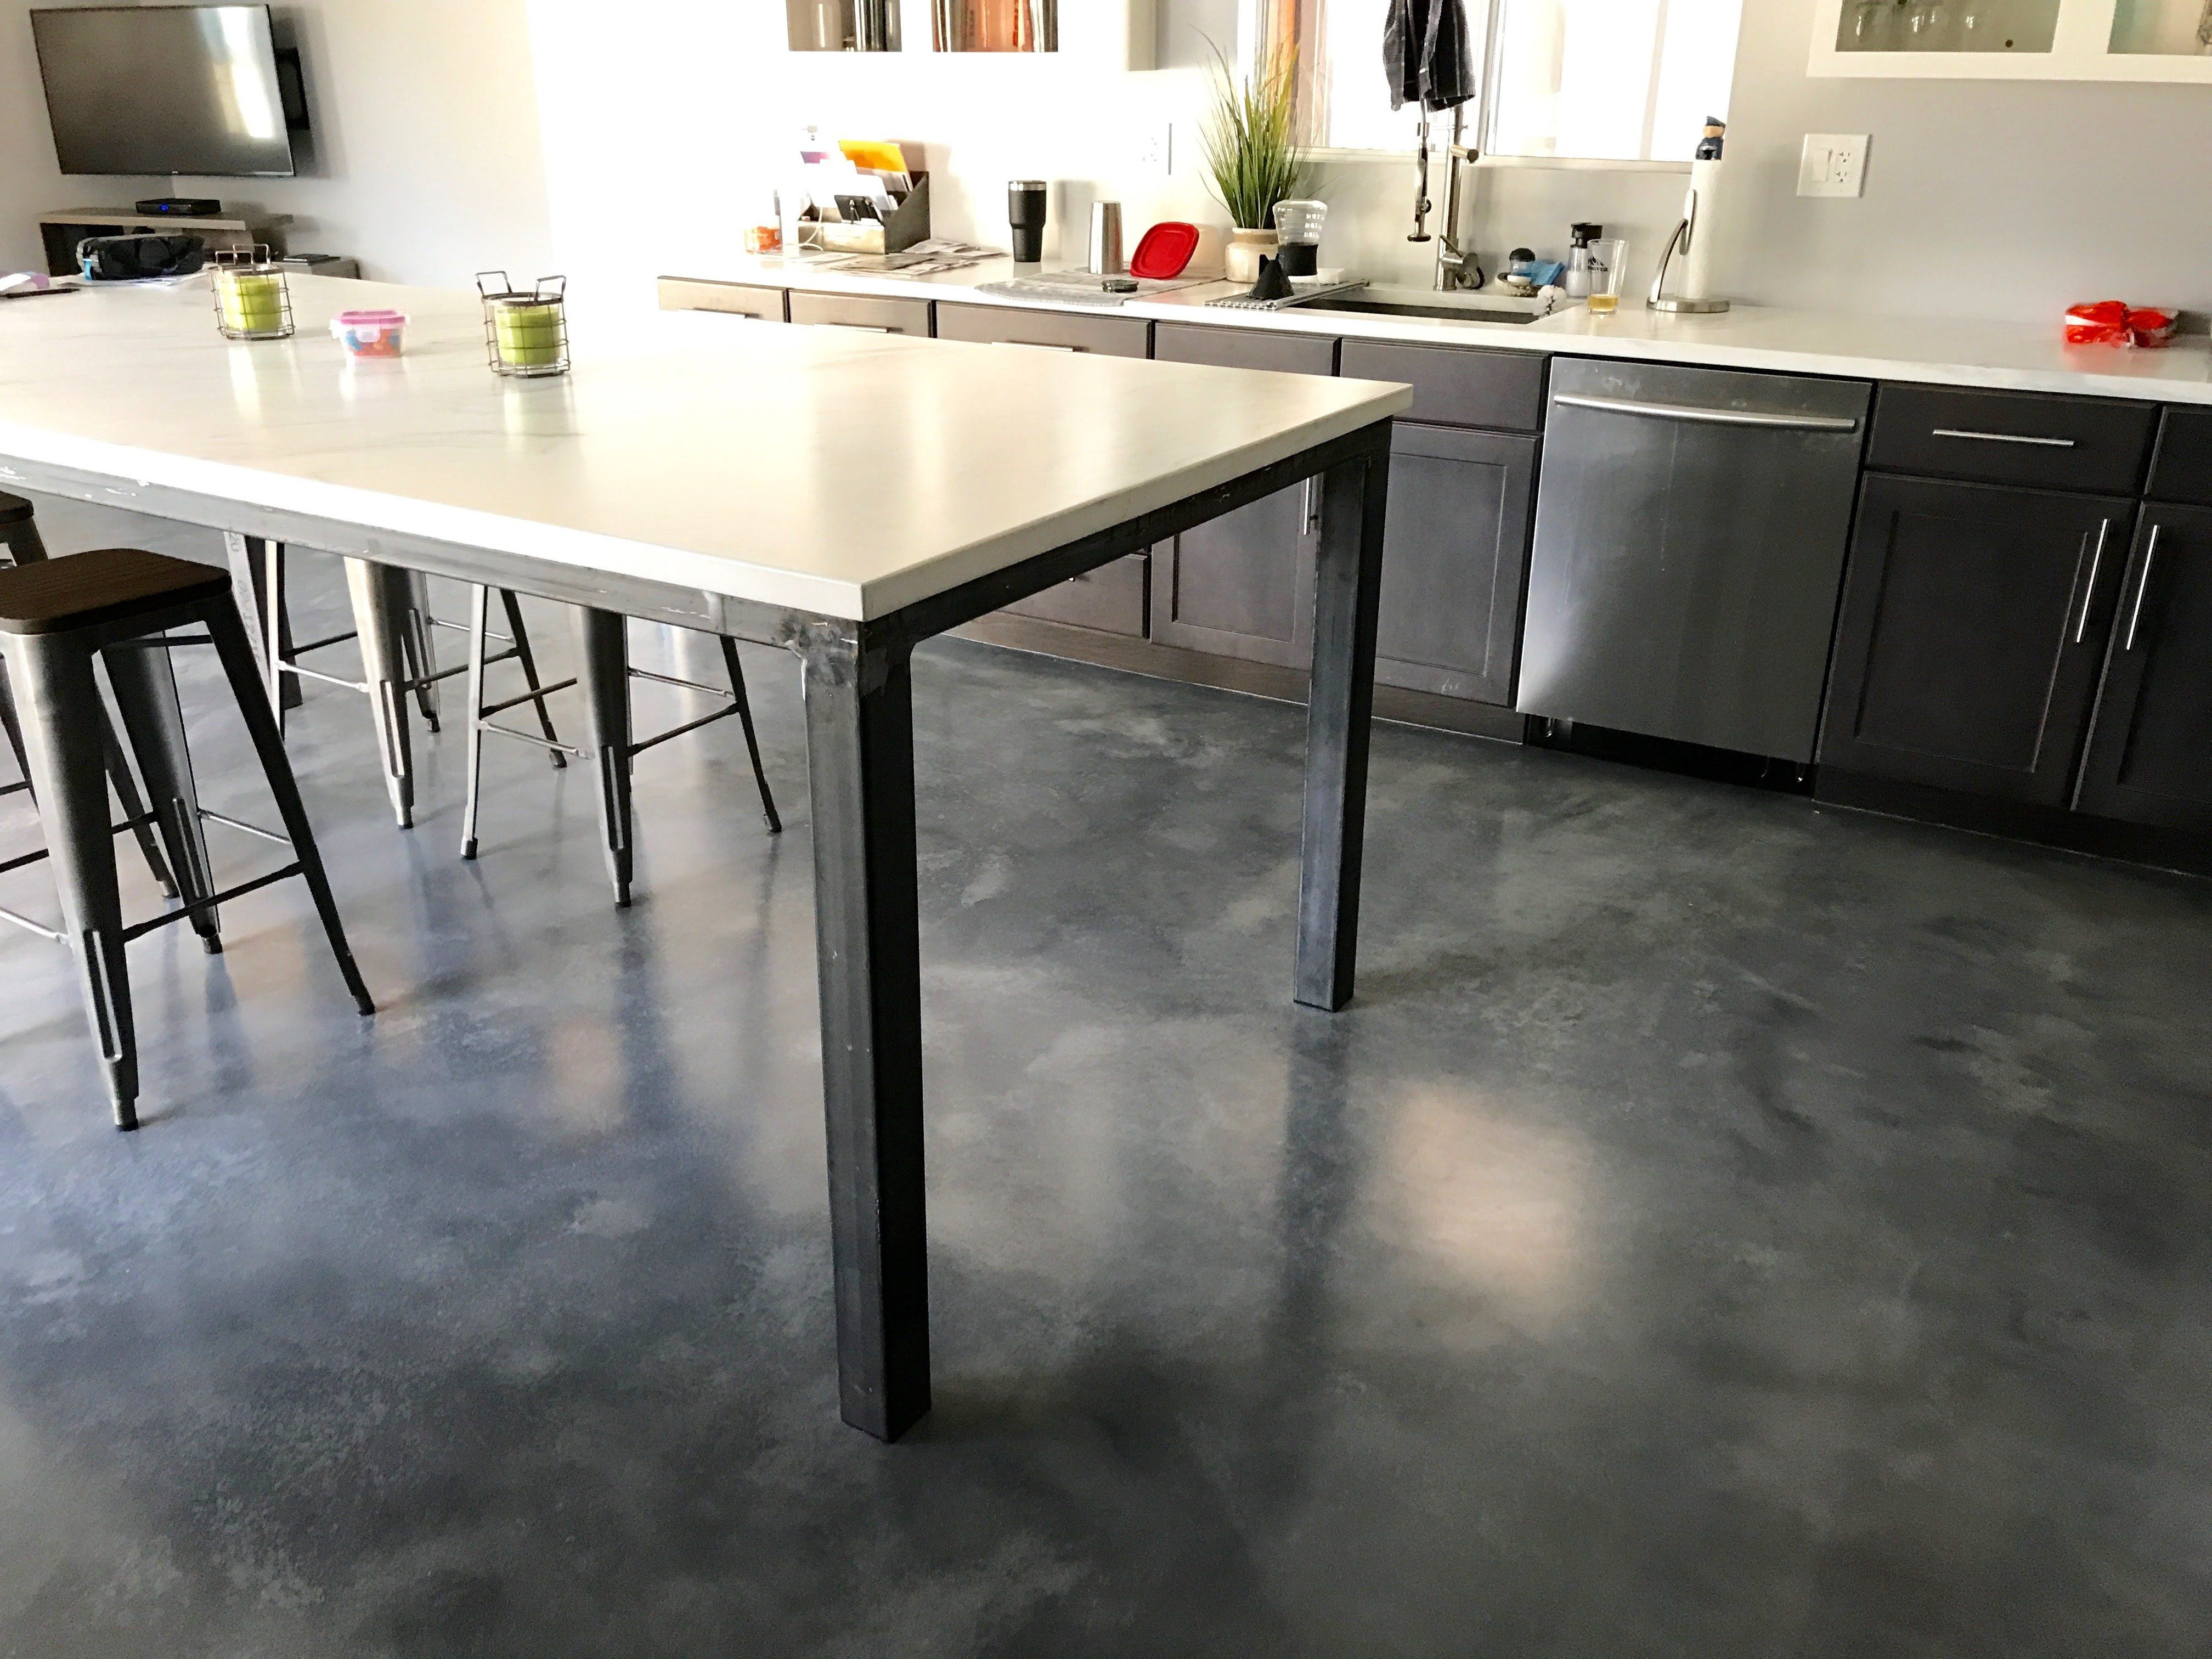 Countertops And Floors Done By Elastocrete And A Few Teams In Phoenix Countertops Flooring Concrete Floors